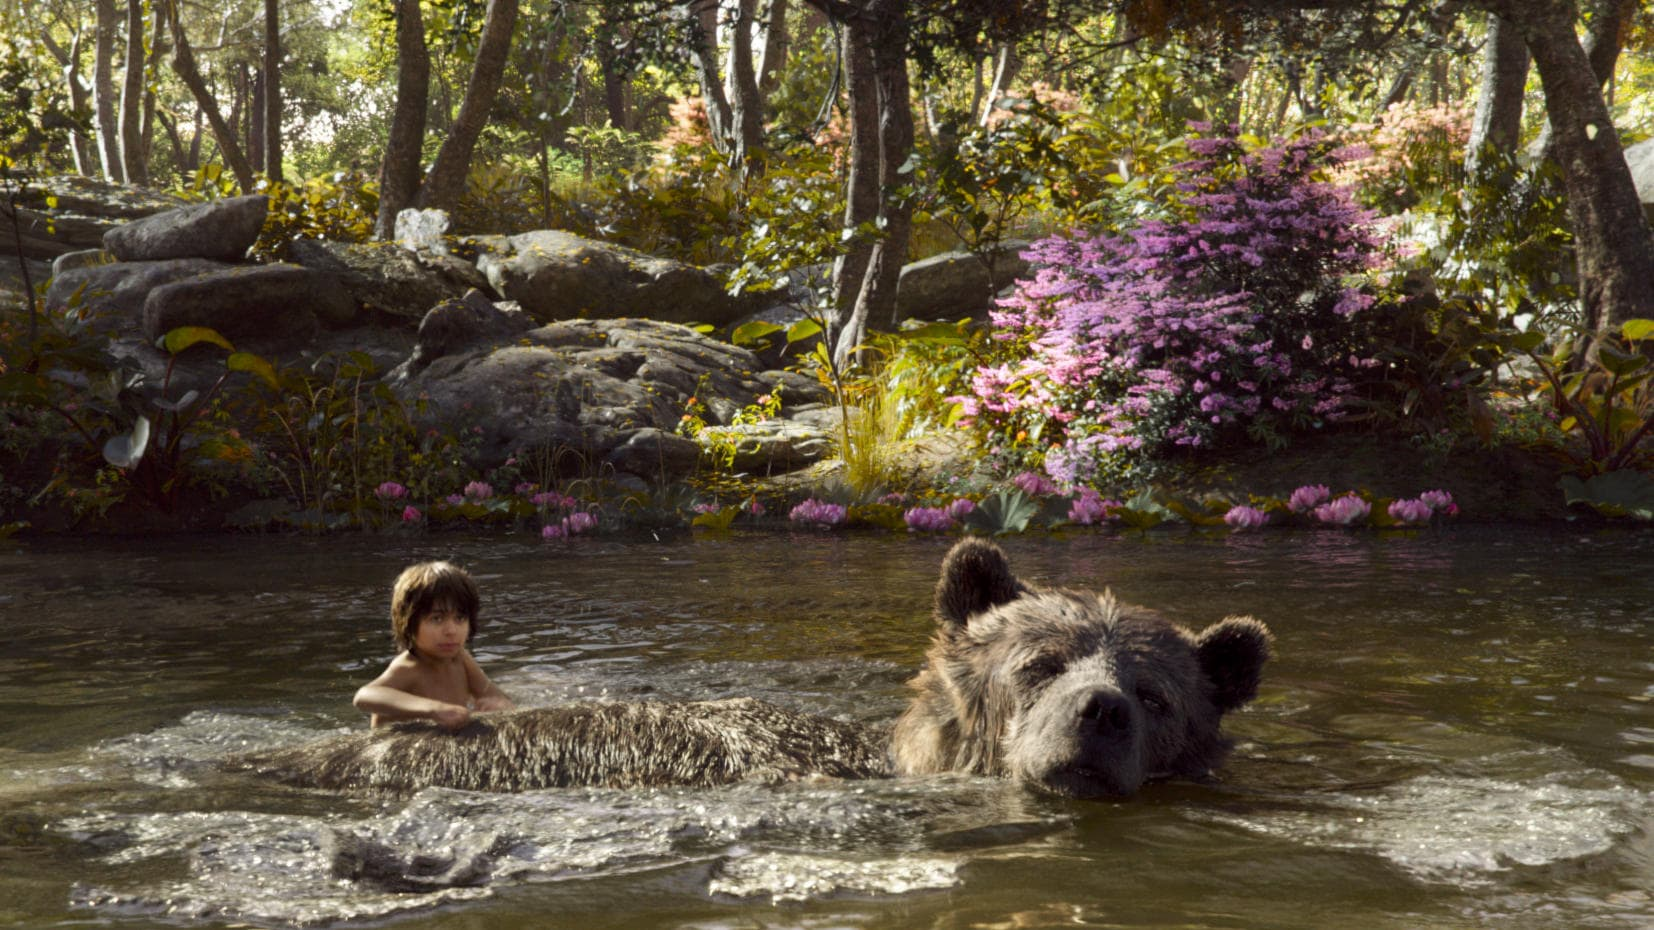 Mowgli and Baloo in The Jungle Book